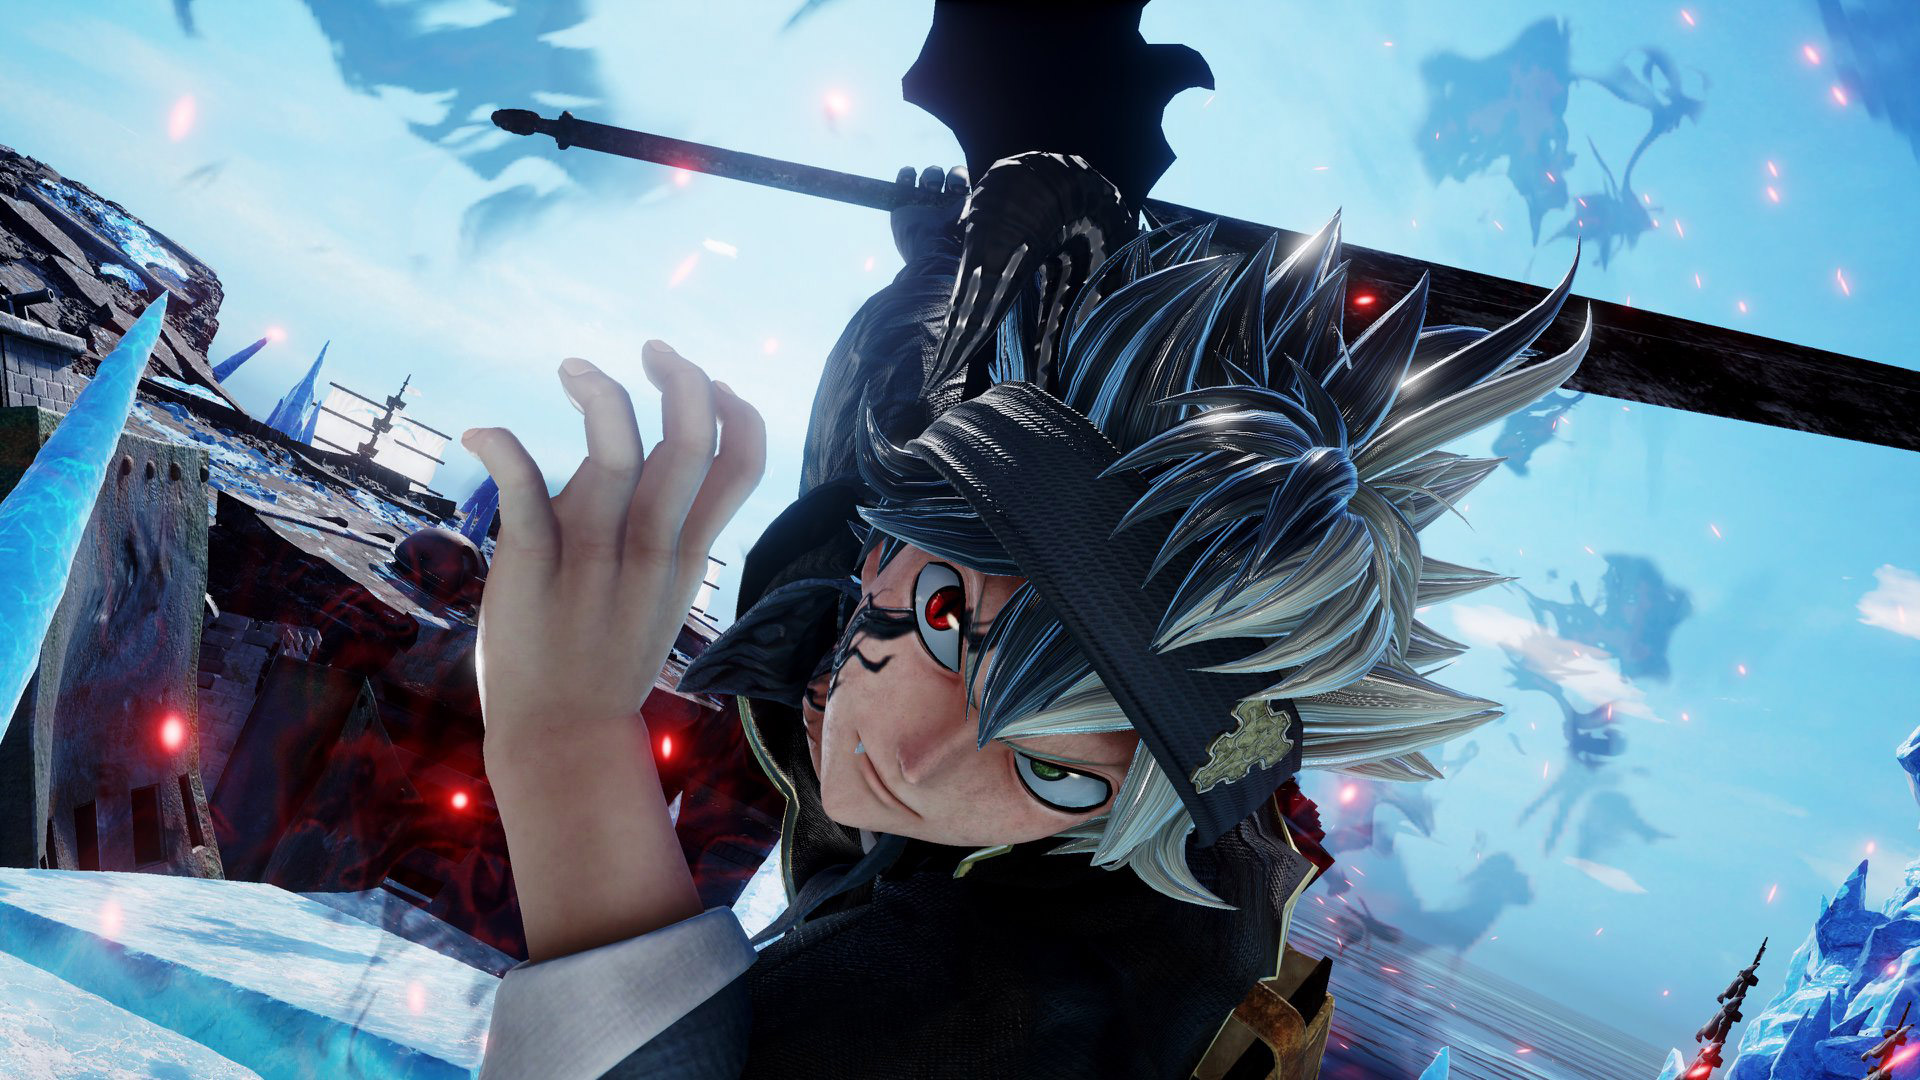 Free Jump Force Wallpaper in 1920x1080